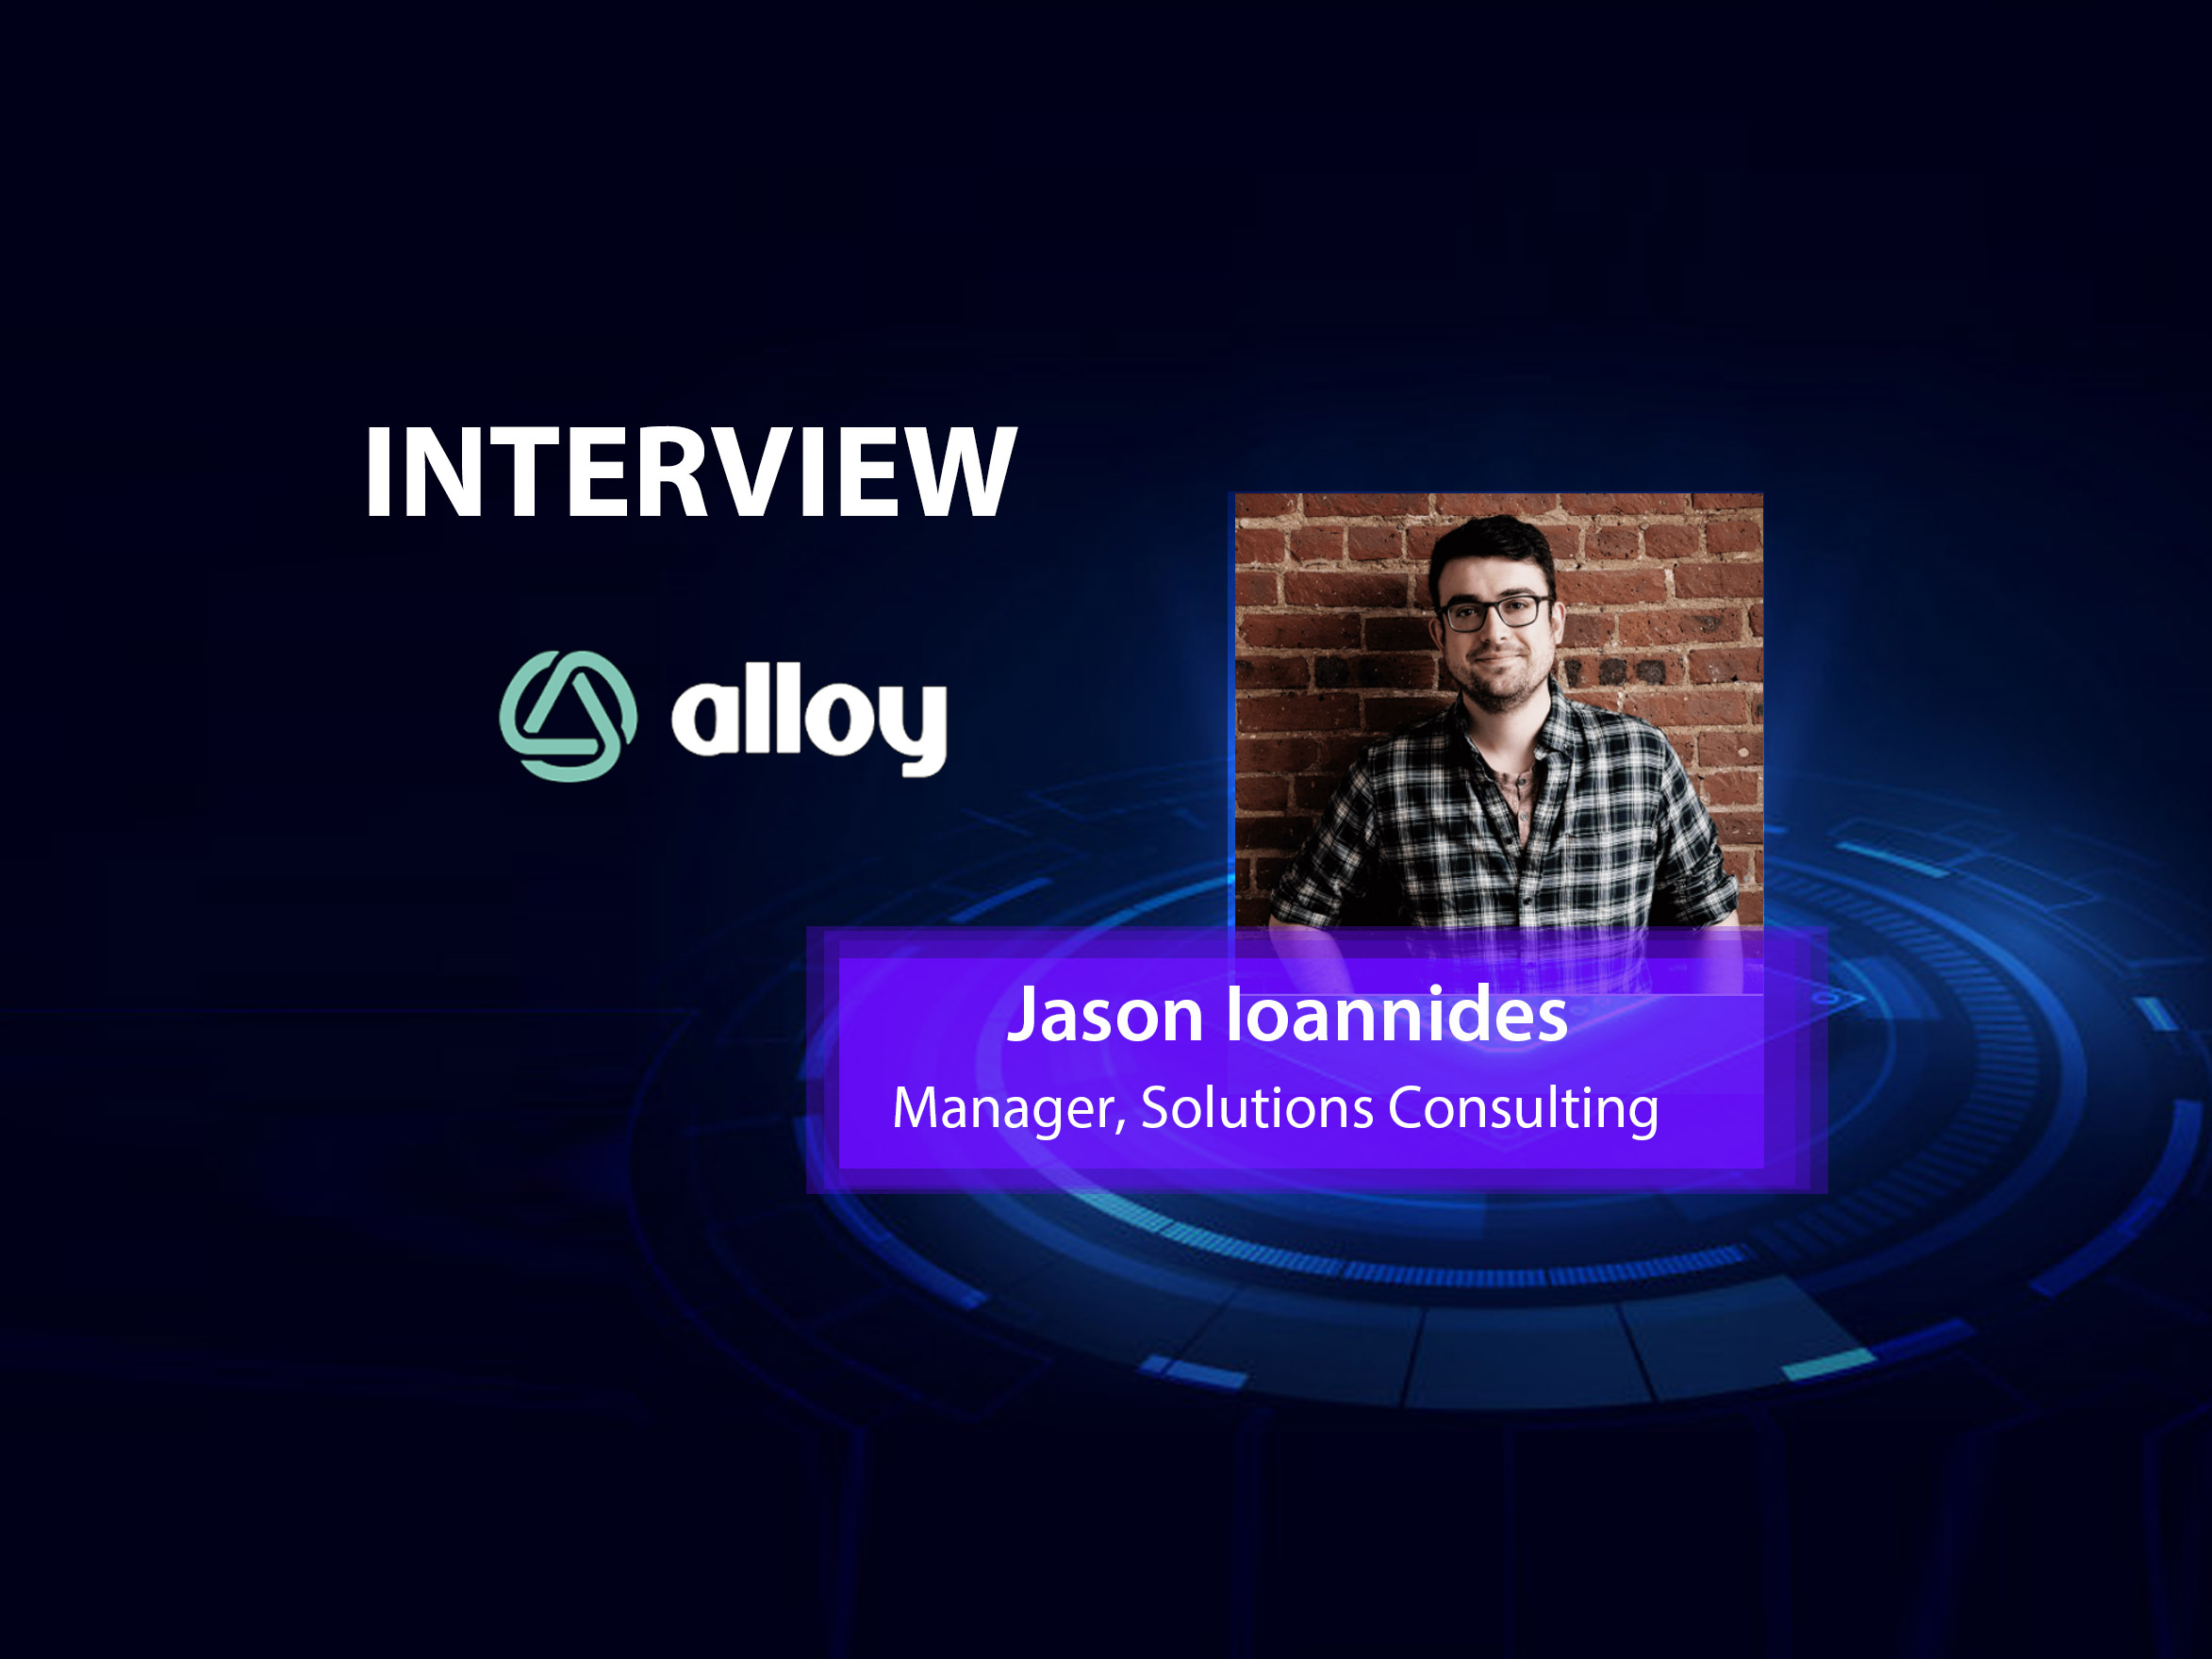 GlobalFintechSeries Interview with Jason Ioannides, Manager, Solutions Consulting at Alloy